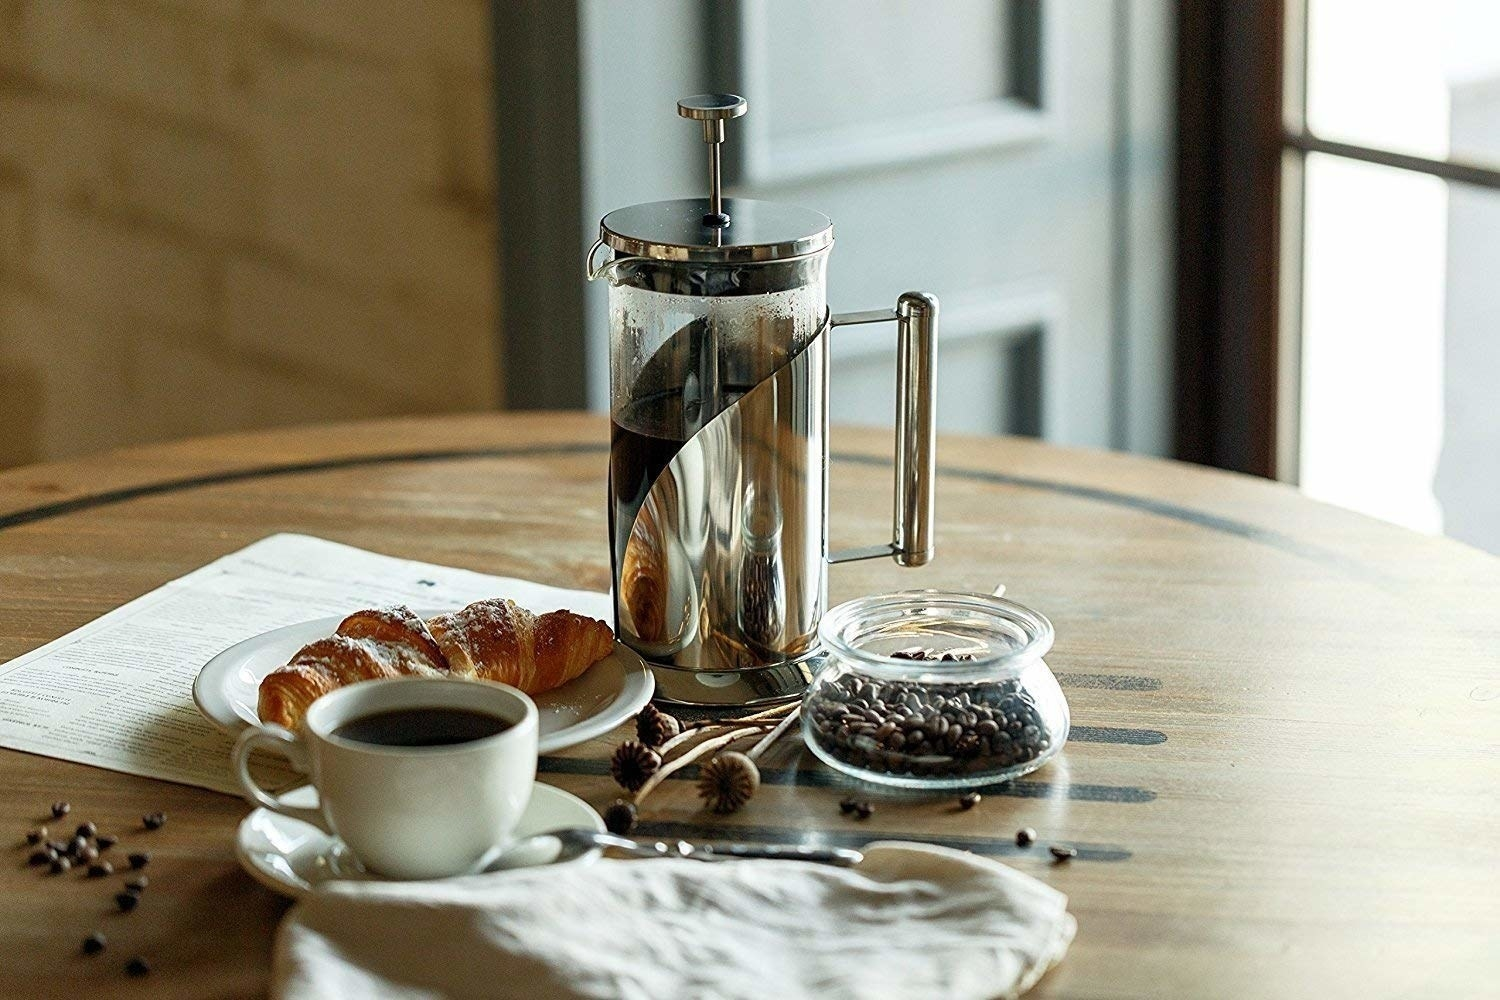 the coffee press on a table